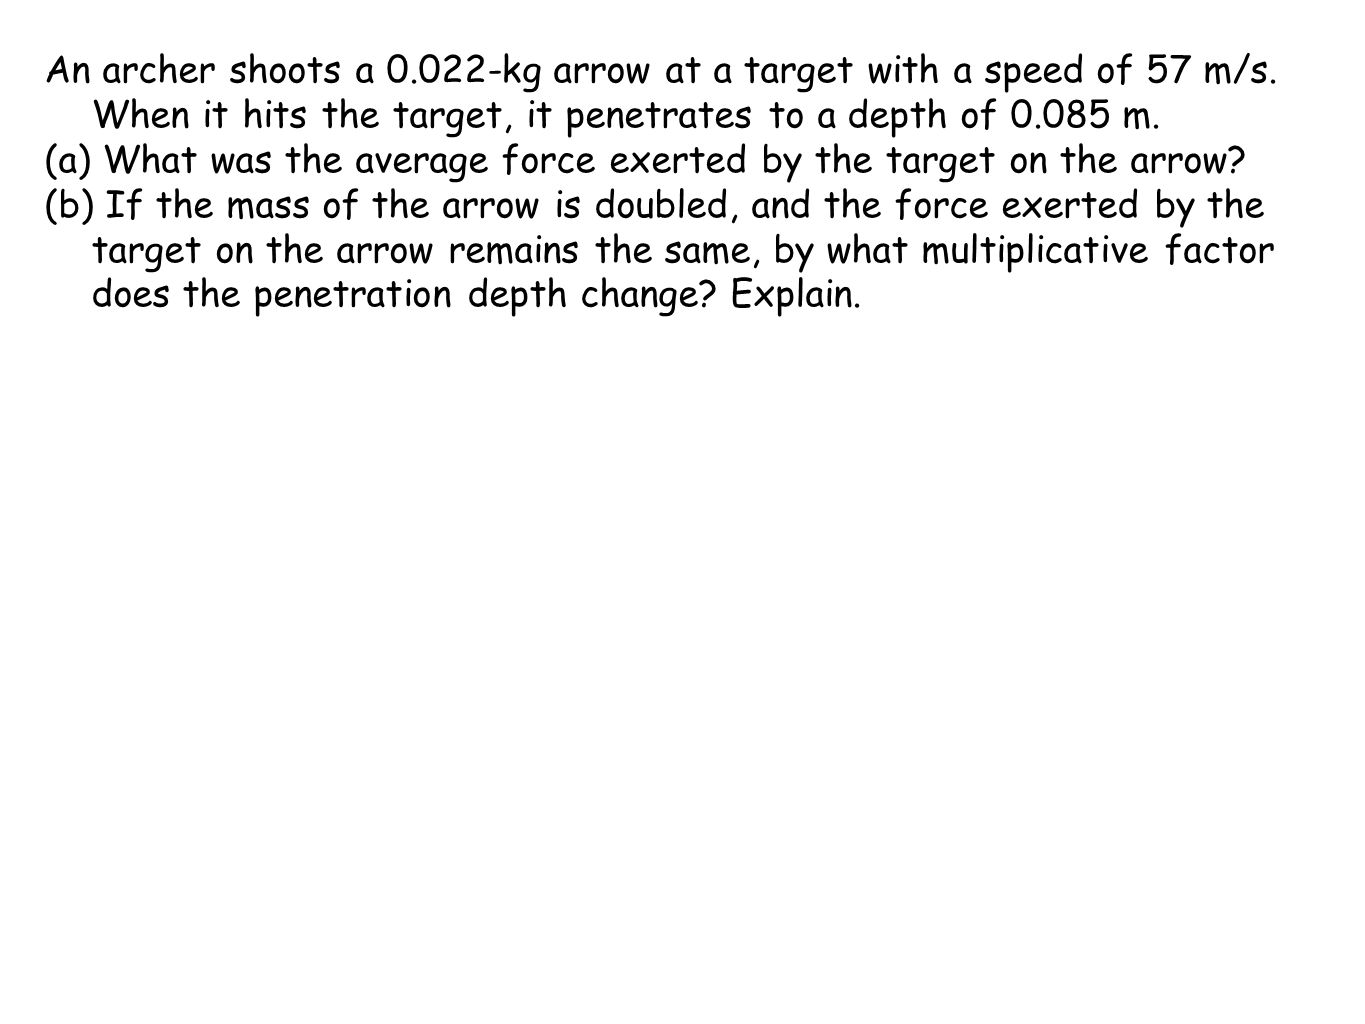 An archer shoots a 0. 022-kg arrow at a target with a speed of 57 m/s